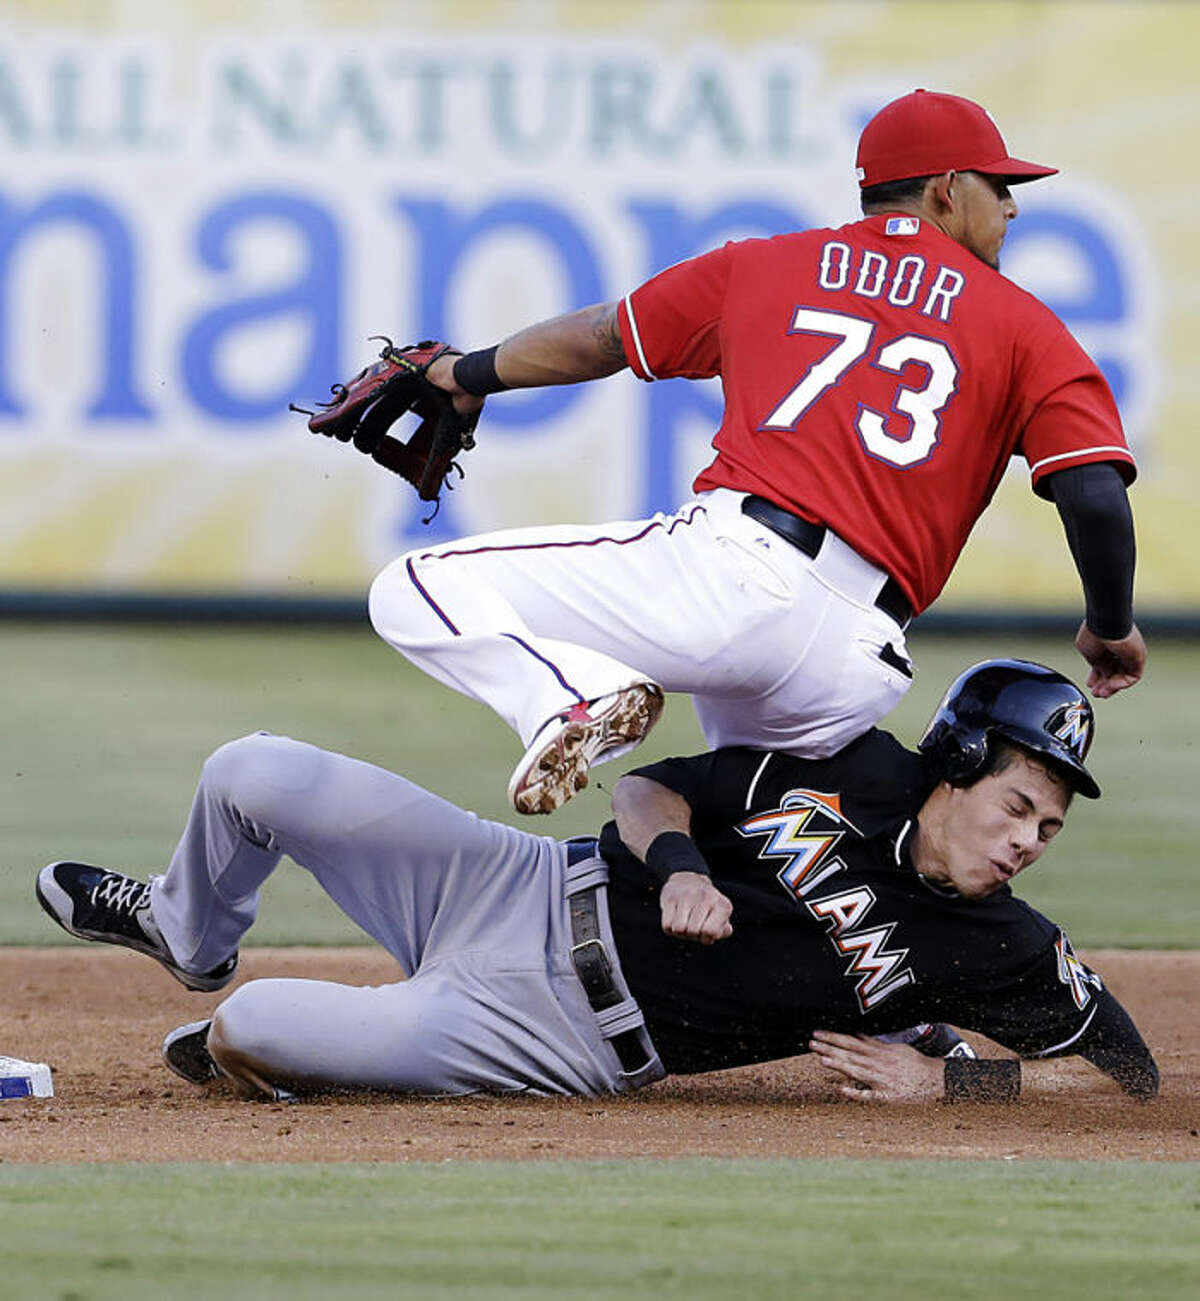 Texas Rangers second baseman Rougned Odor (73) lands on Miami Marlins Christian Yelich at second base turning a double play during the third inning of a baseball game in Arlington, Texas, Wednesday, June 11, 2014. Marlins Ed Lucas was out at first. (AP Photo/LM Otero)